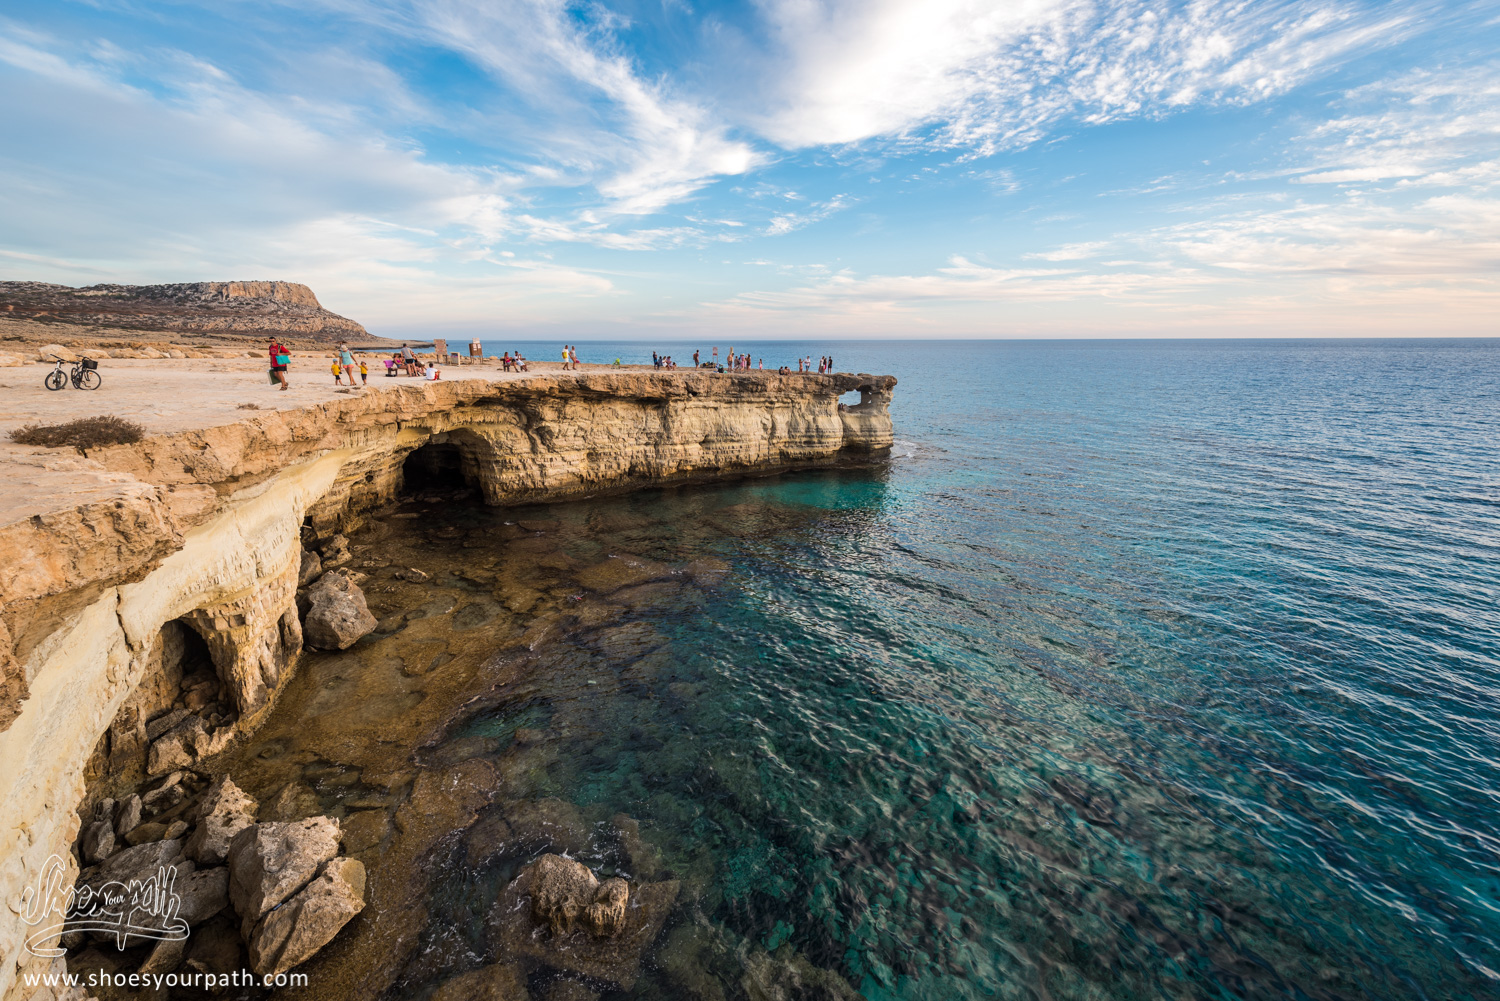 Sea Caves, Cape Greco, Ayia Napia - Chypre